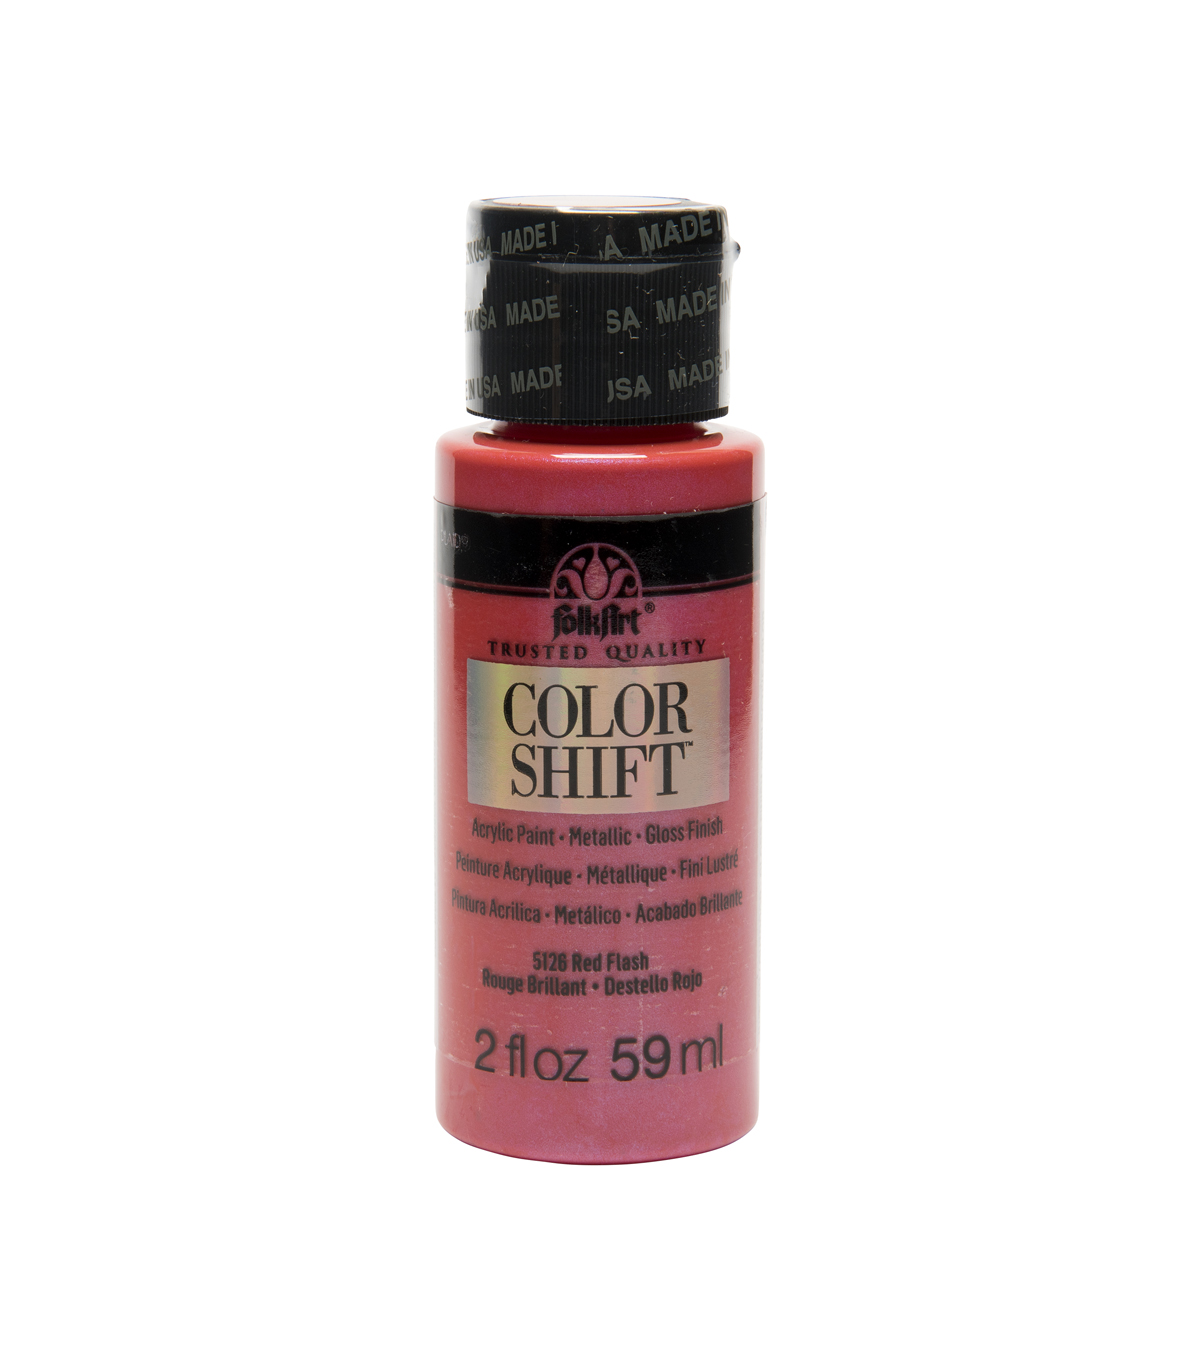 FolkArt Color Shift Metallic Acrylic Paint 2oz, Red